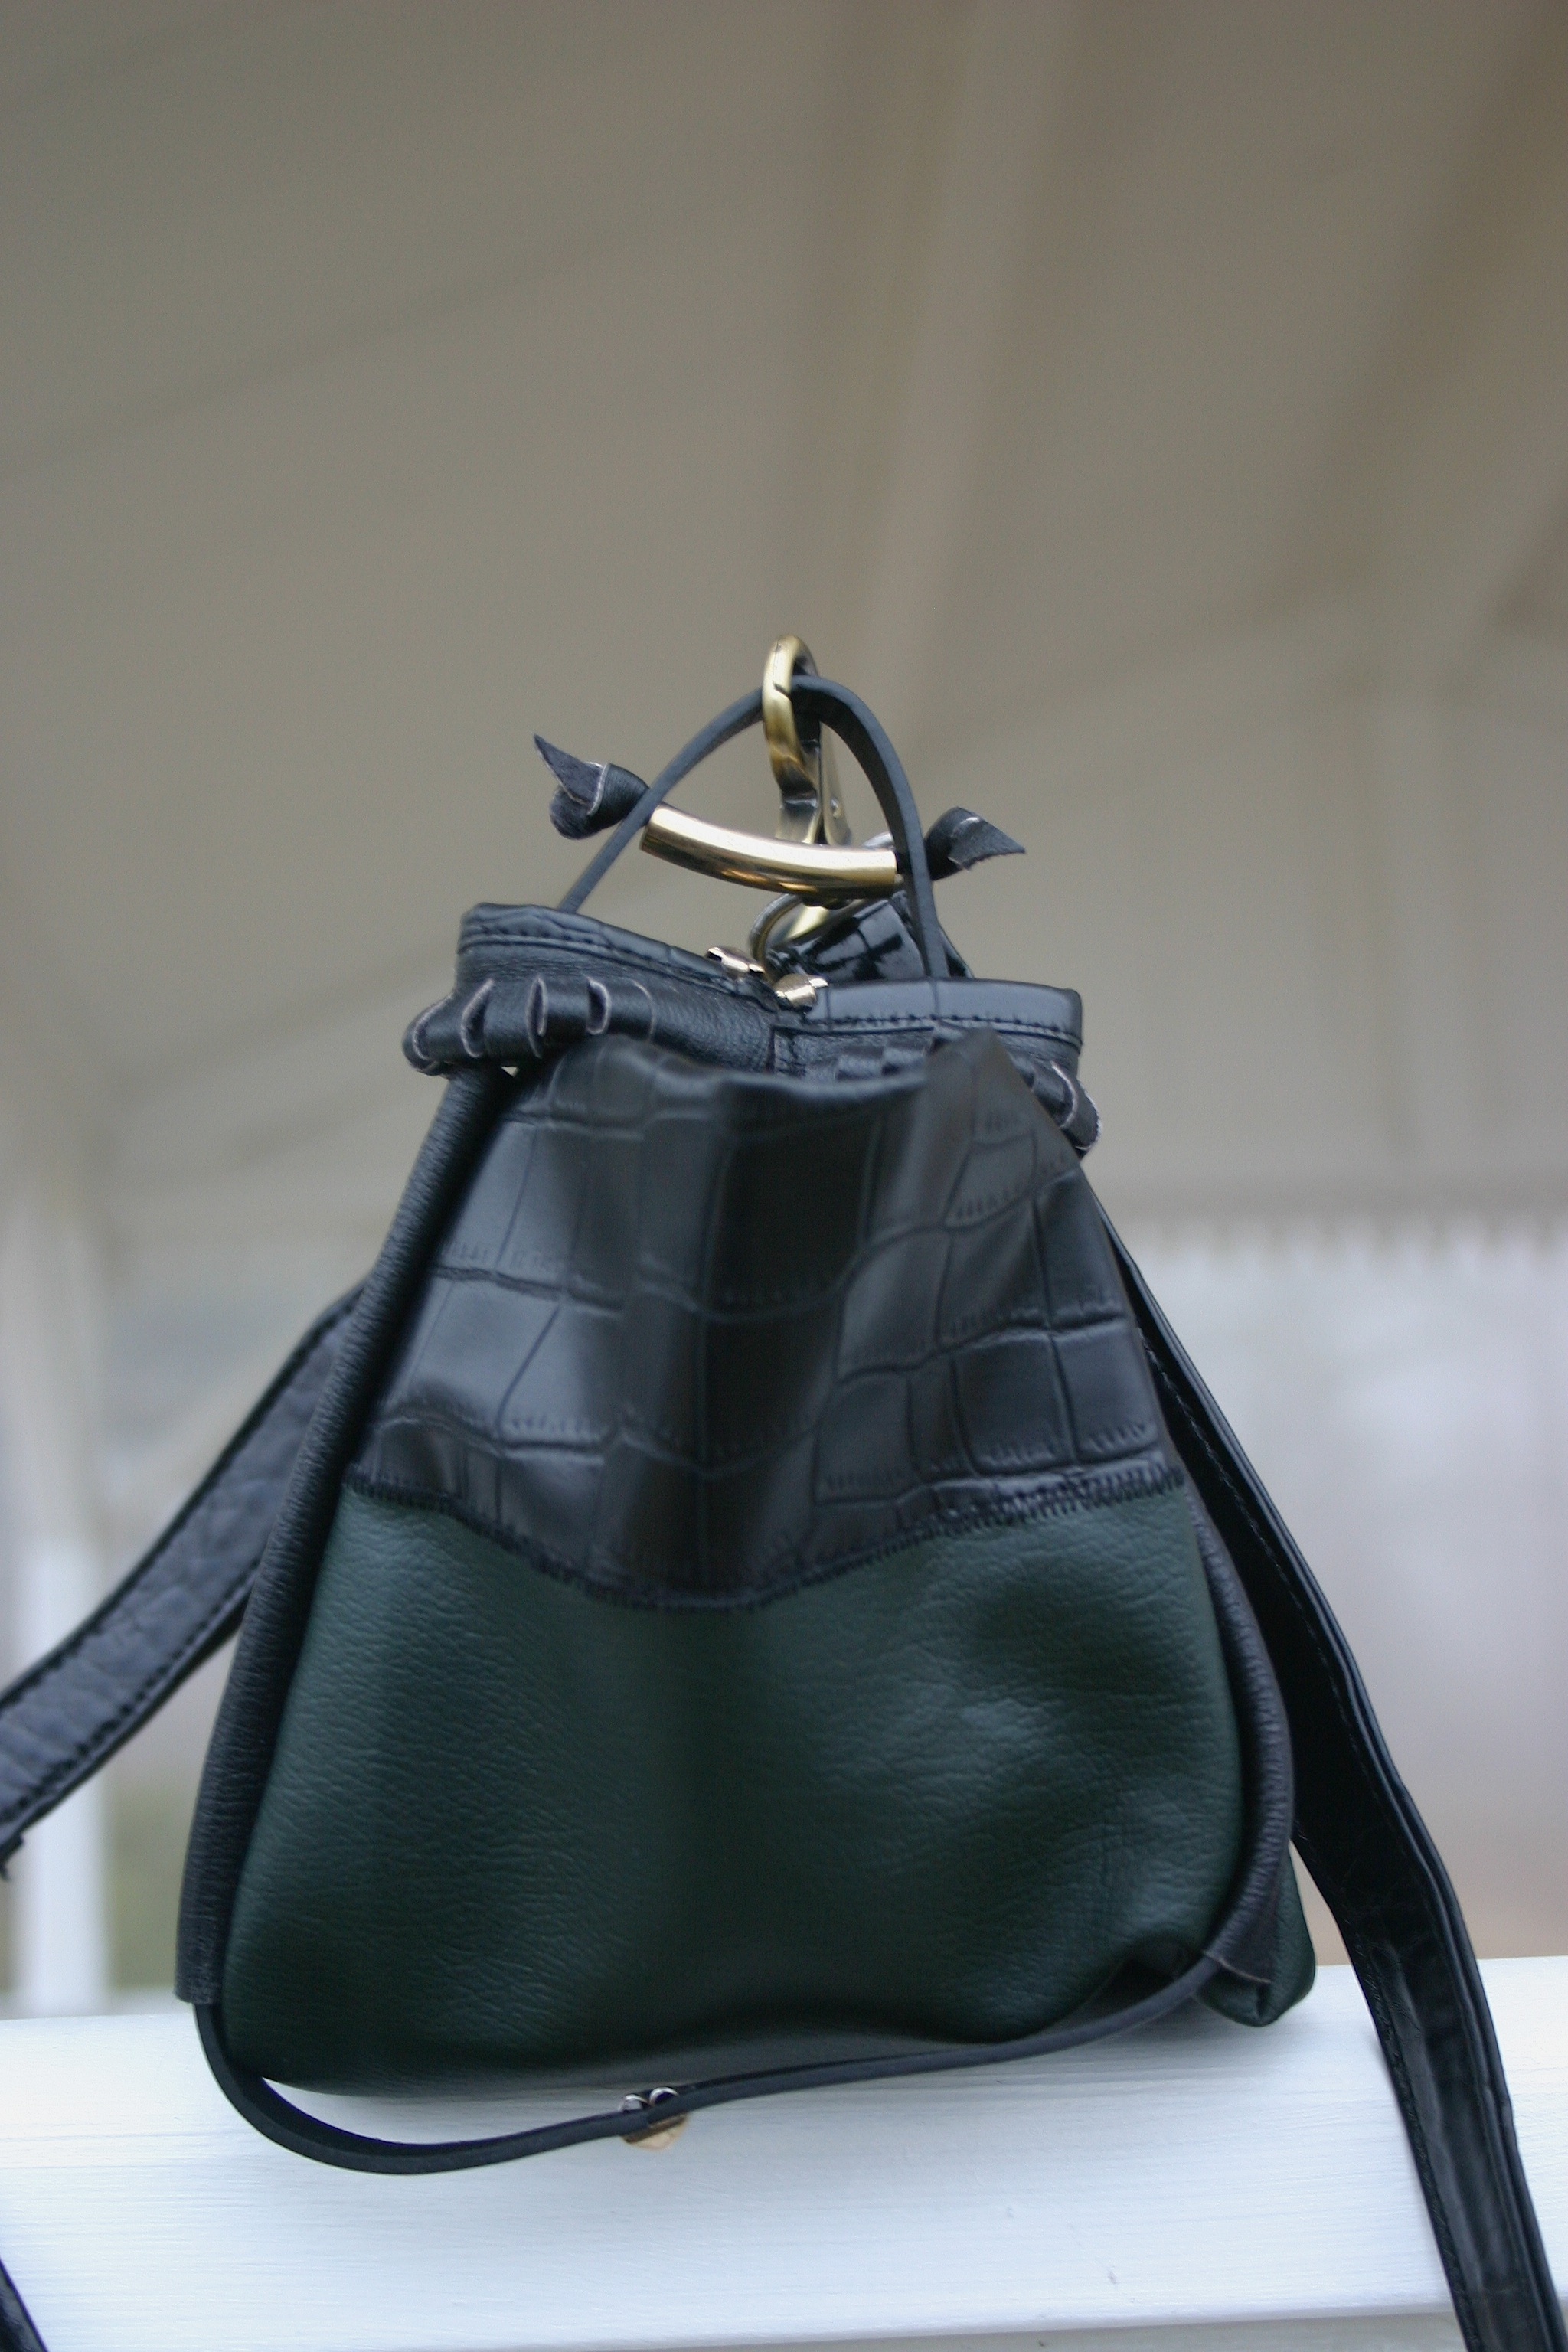 diy-greenish-leather-bag-side-view-of-handle-fastening